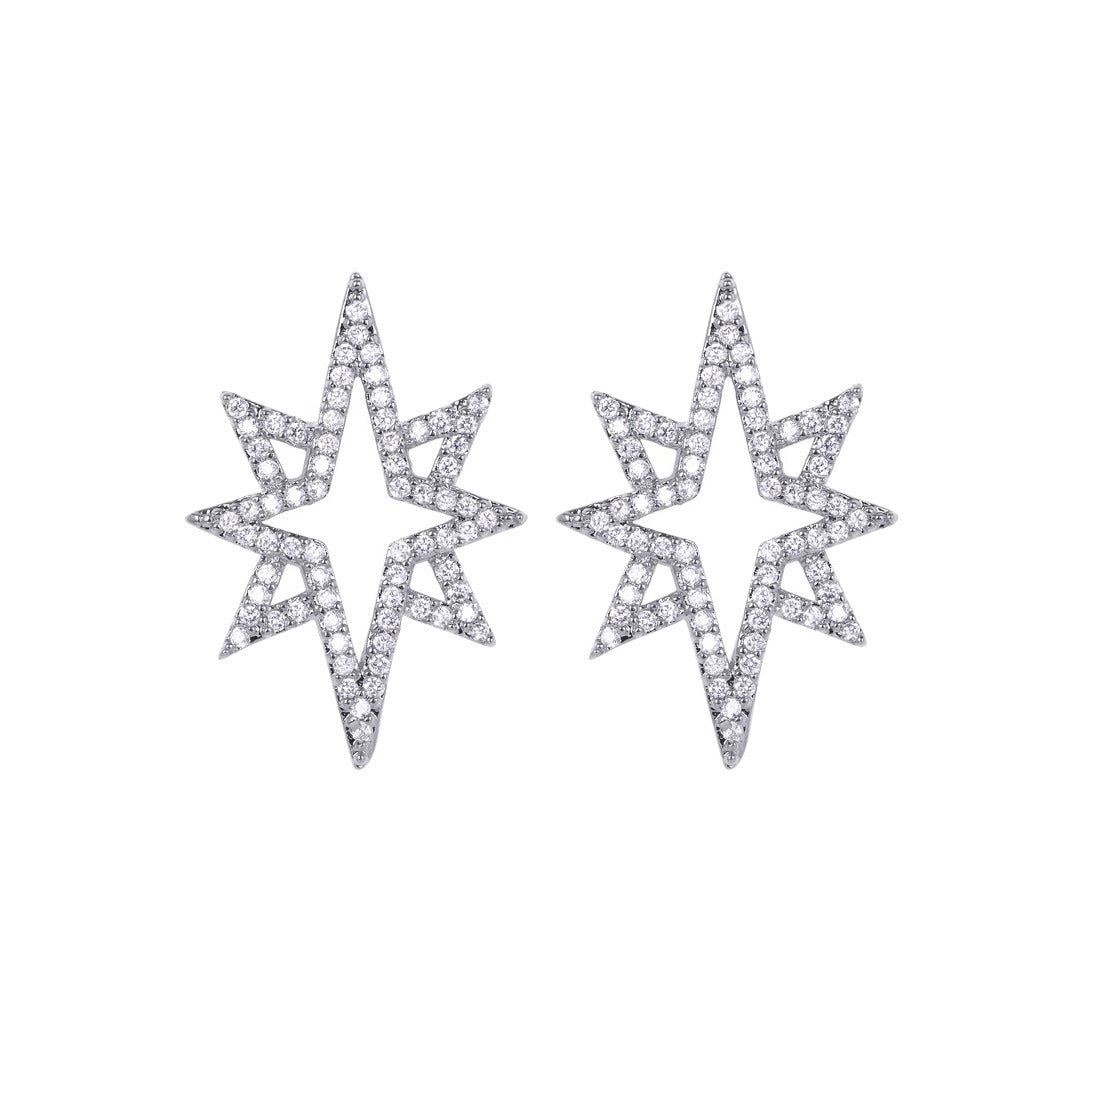 STARBURST EARRINGS - SILVER